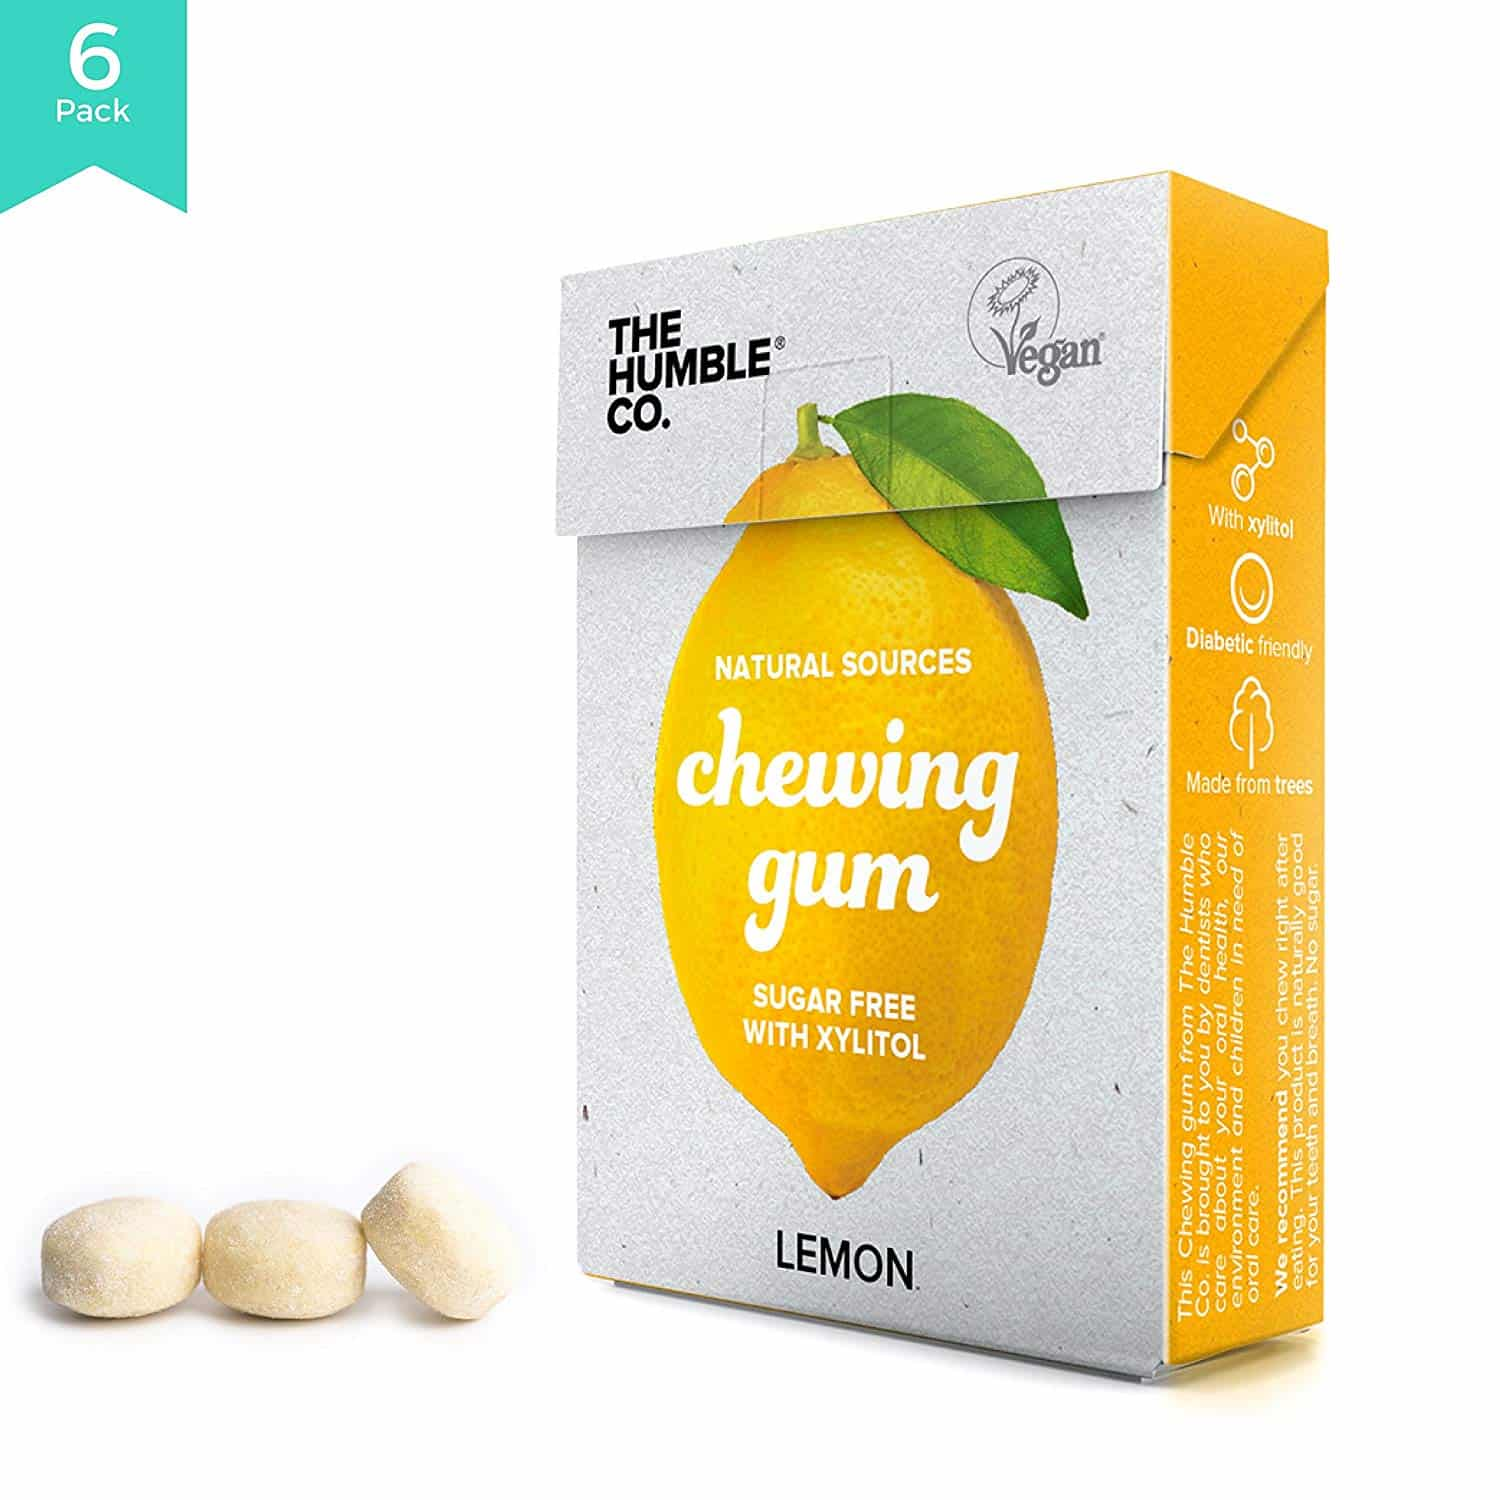 The Humble Co. Aspartame-free Chewing Gum